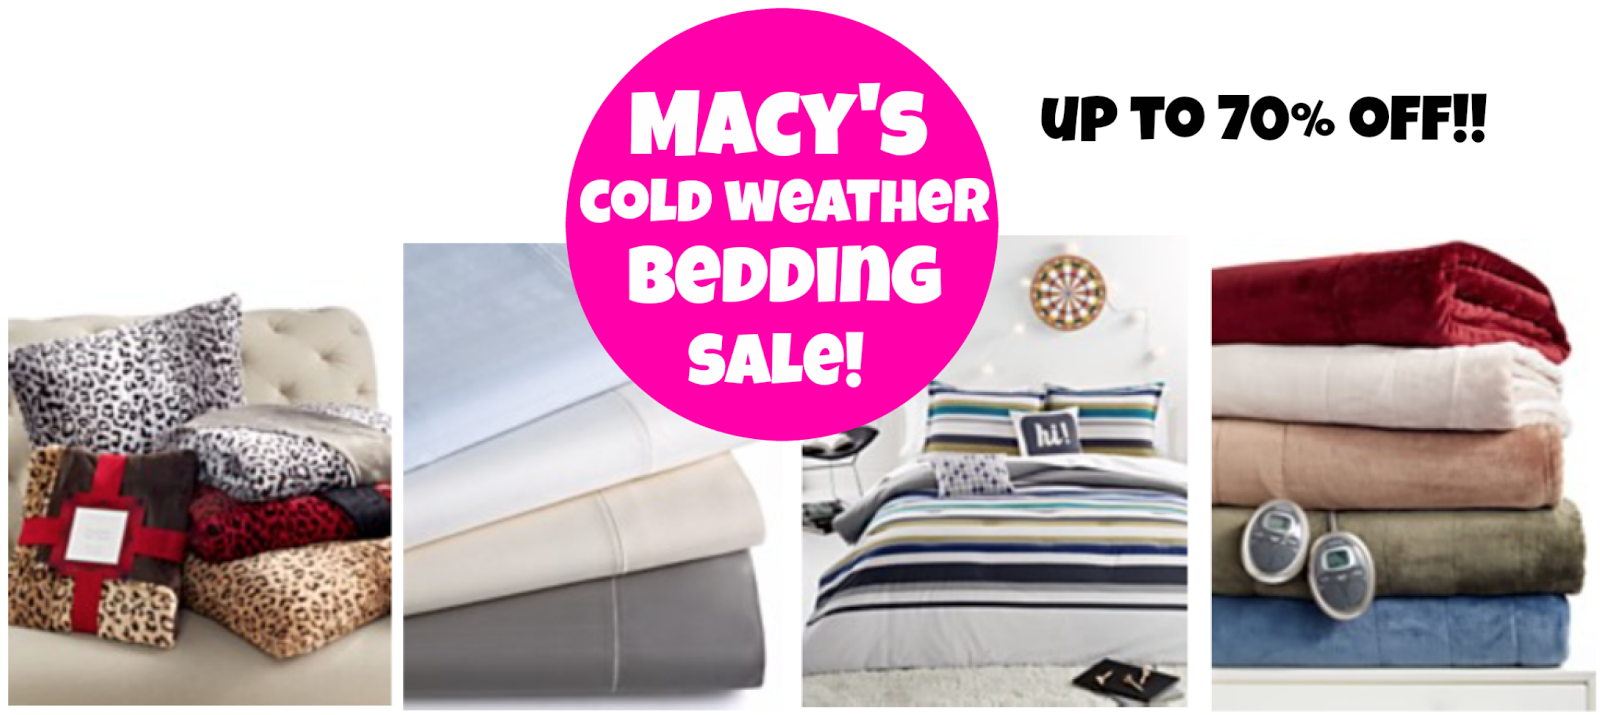 http://www.thebinderladies.com/2015/02/macys-com-cold-weather-bedding.html#.VONmGIfduyM